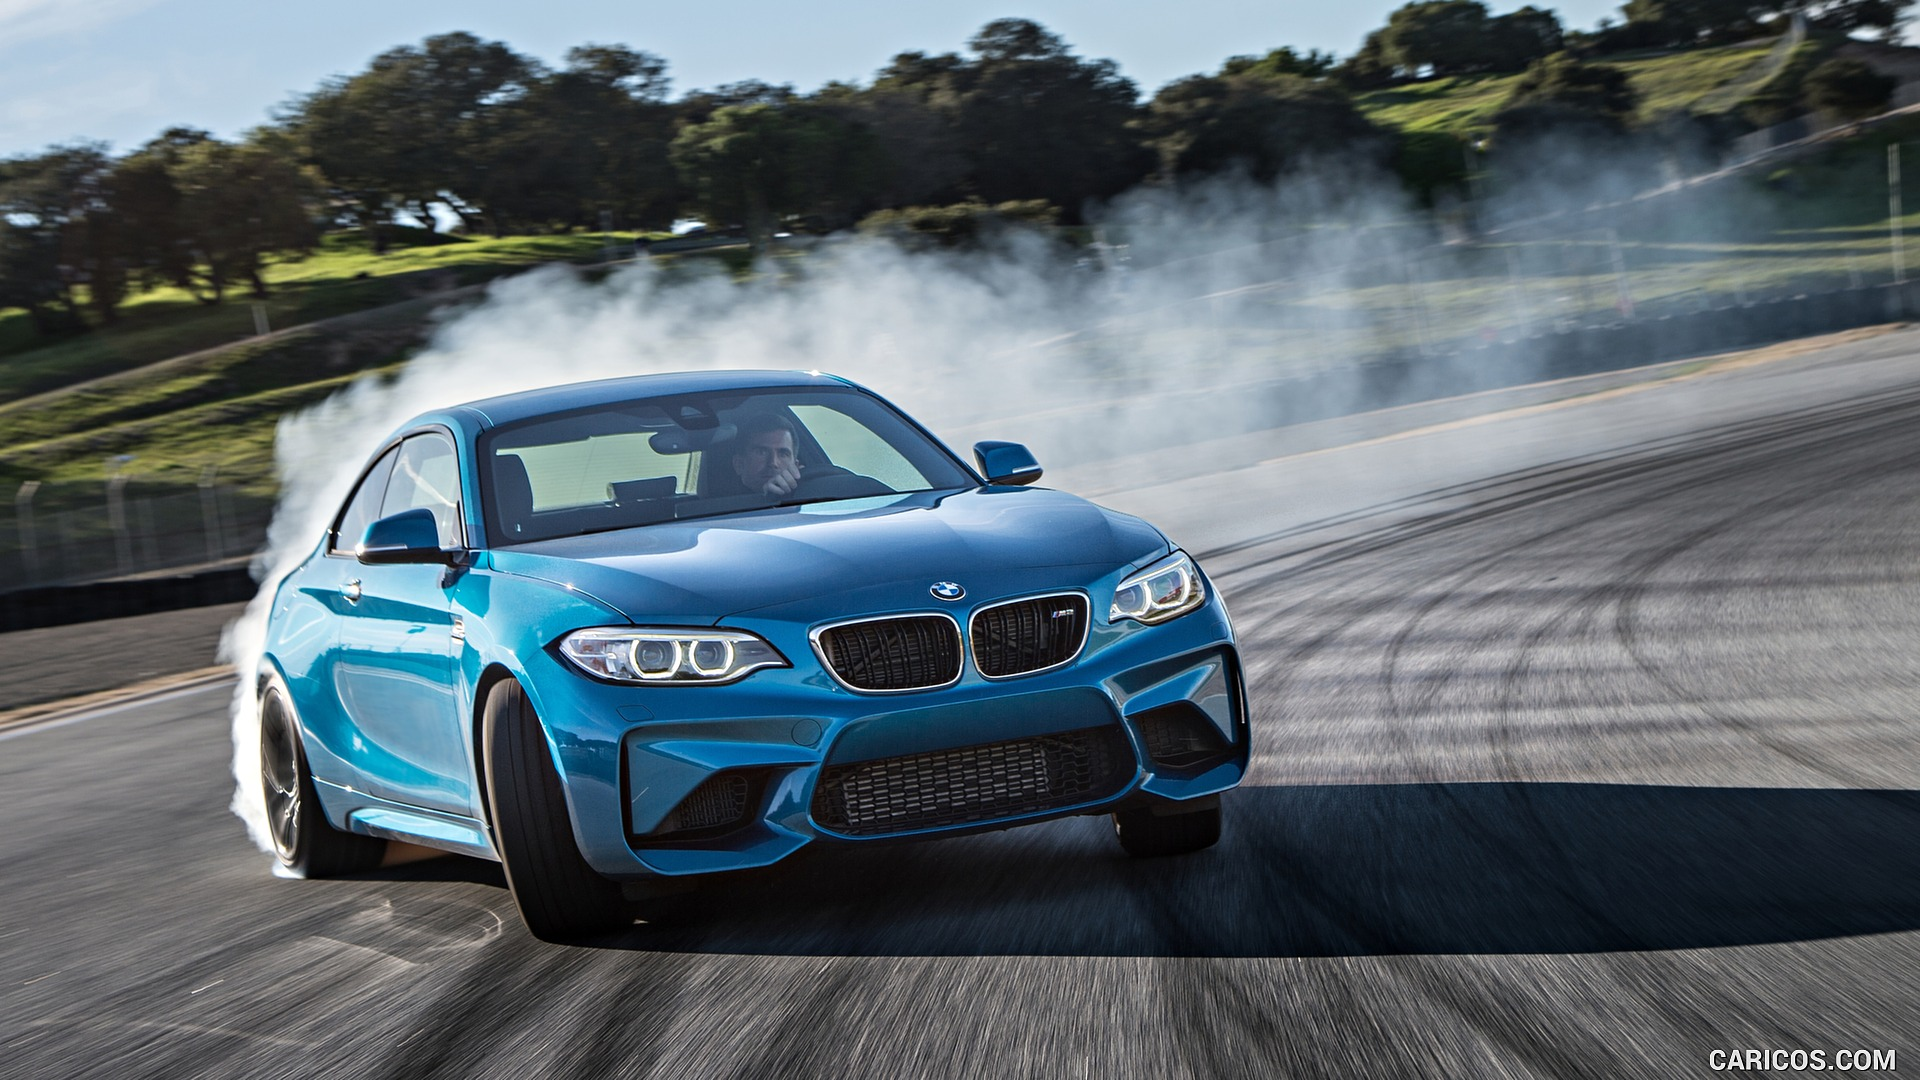 1920x1080 - BMW M2 Coupe Wallpapers 19